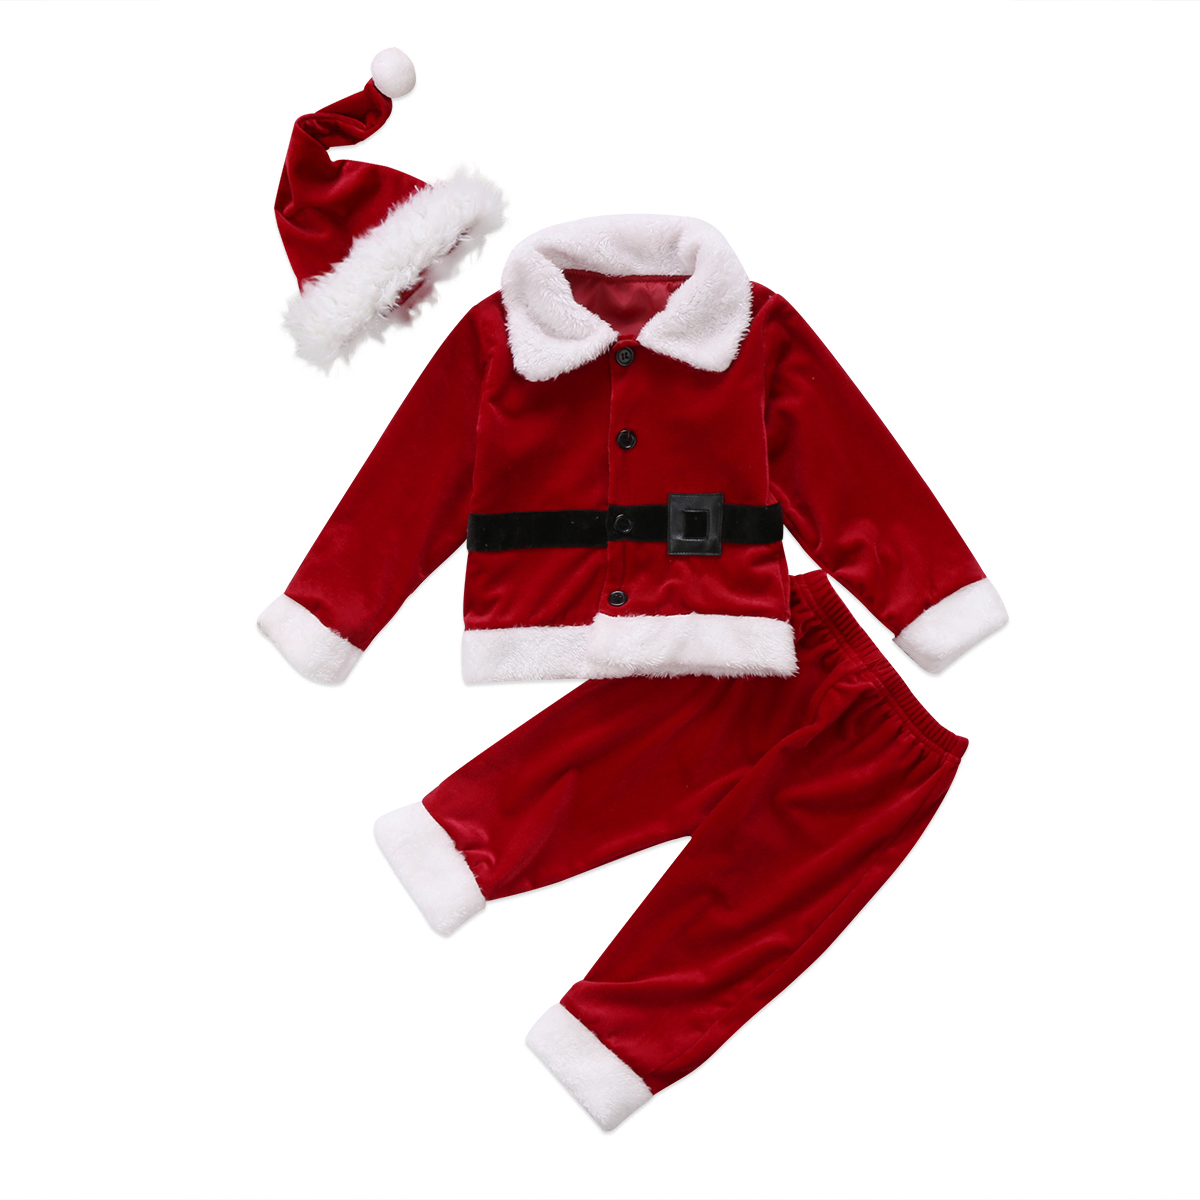 2017 New year kid baby boys girls Christmas Costume Santa Claus Suit Christmas Clothes Tops+Pant 2pcs Boys girl Kids Clothes adult christmas santa claus costumes flocking rabbit fur fancy cosplay santa claus clothes good quality costume christmas suit